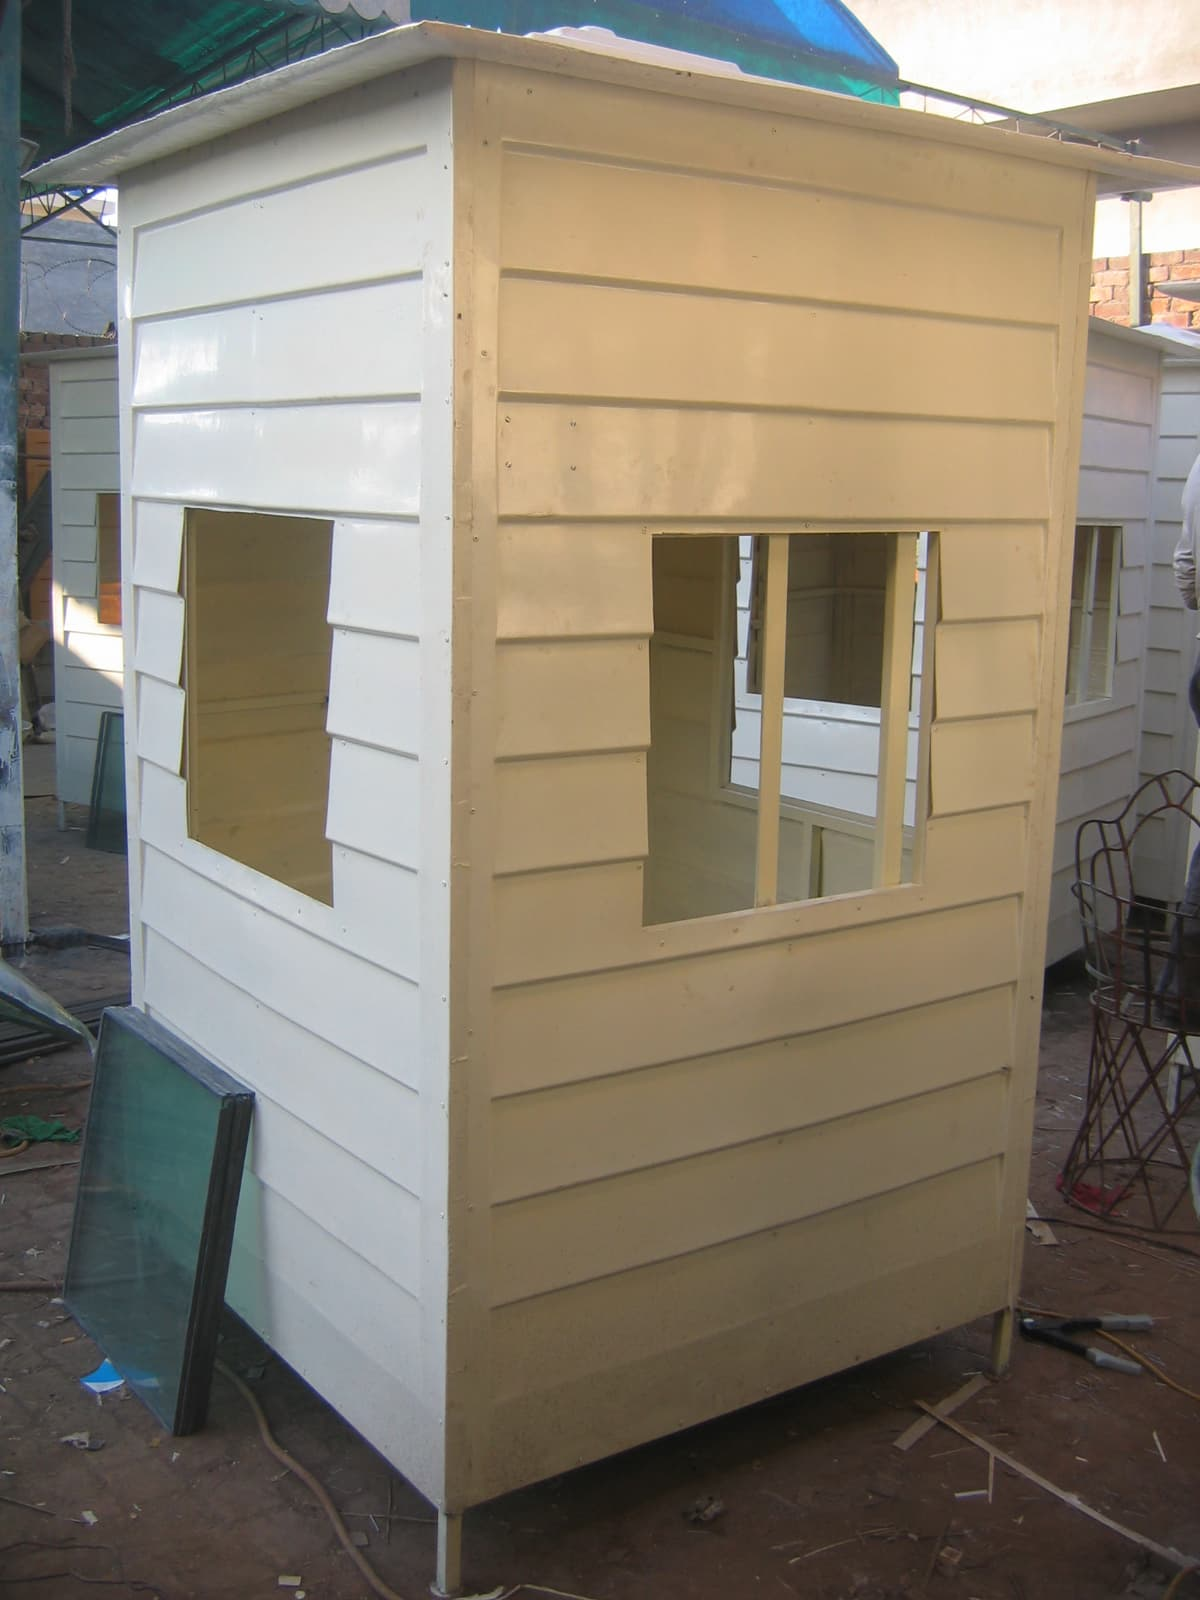 Fiberglass security guard cabin from Industrial techno International